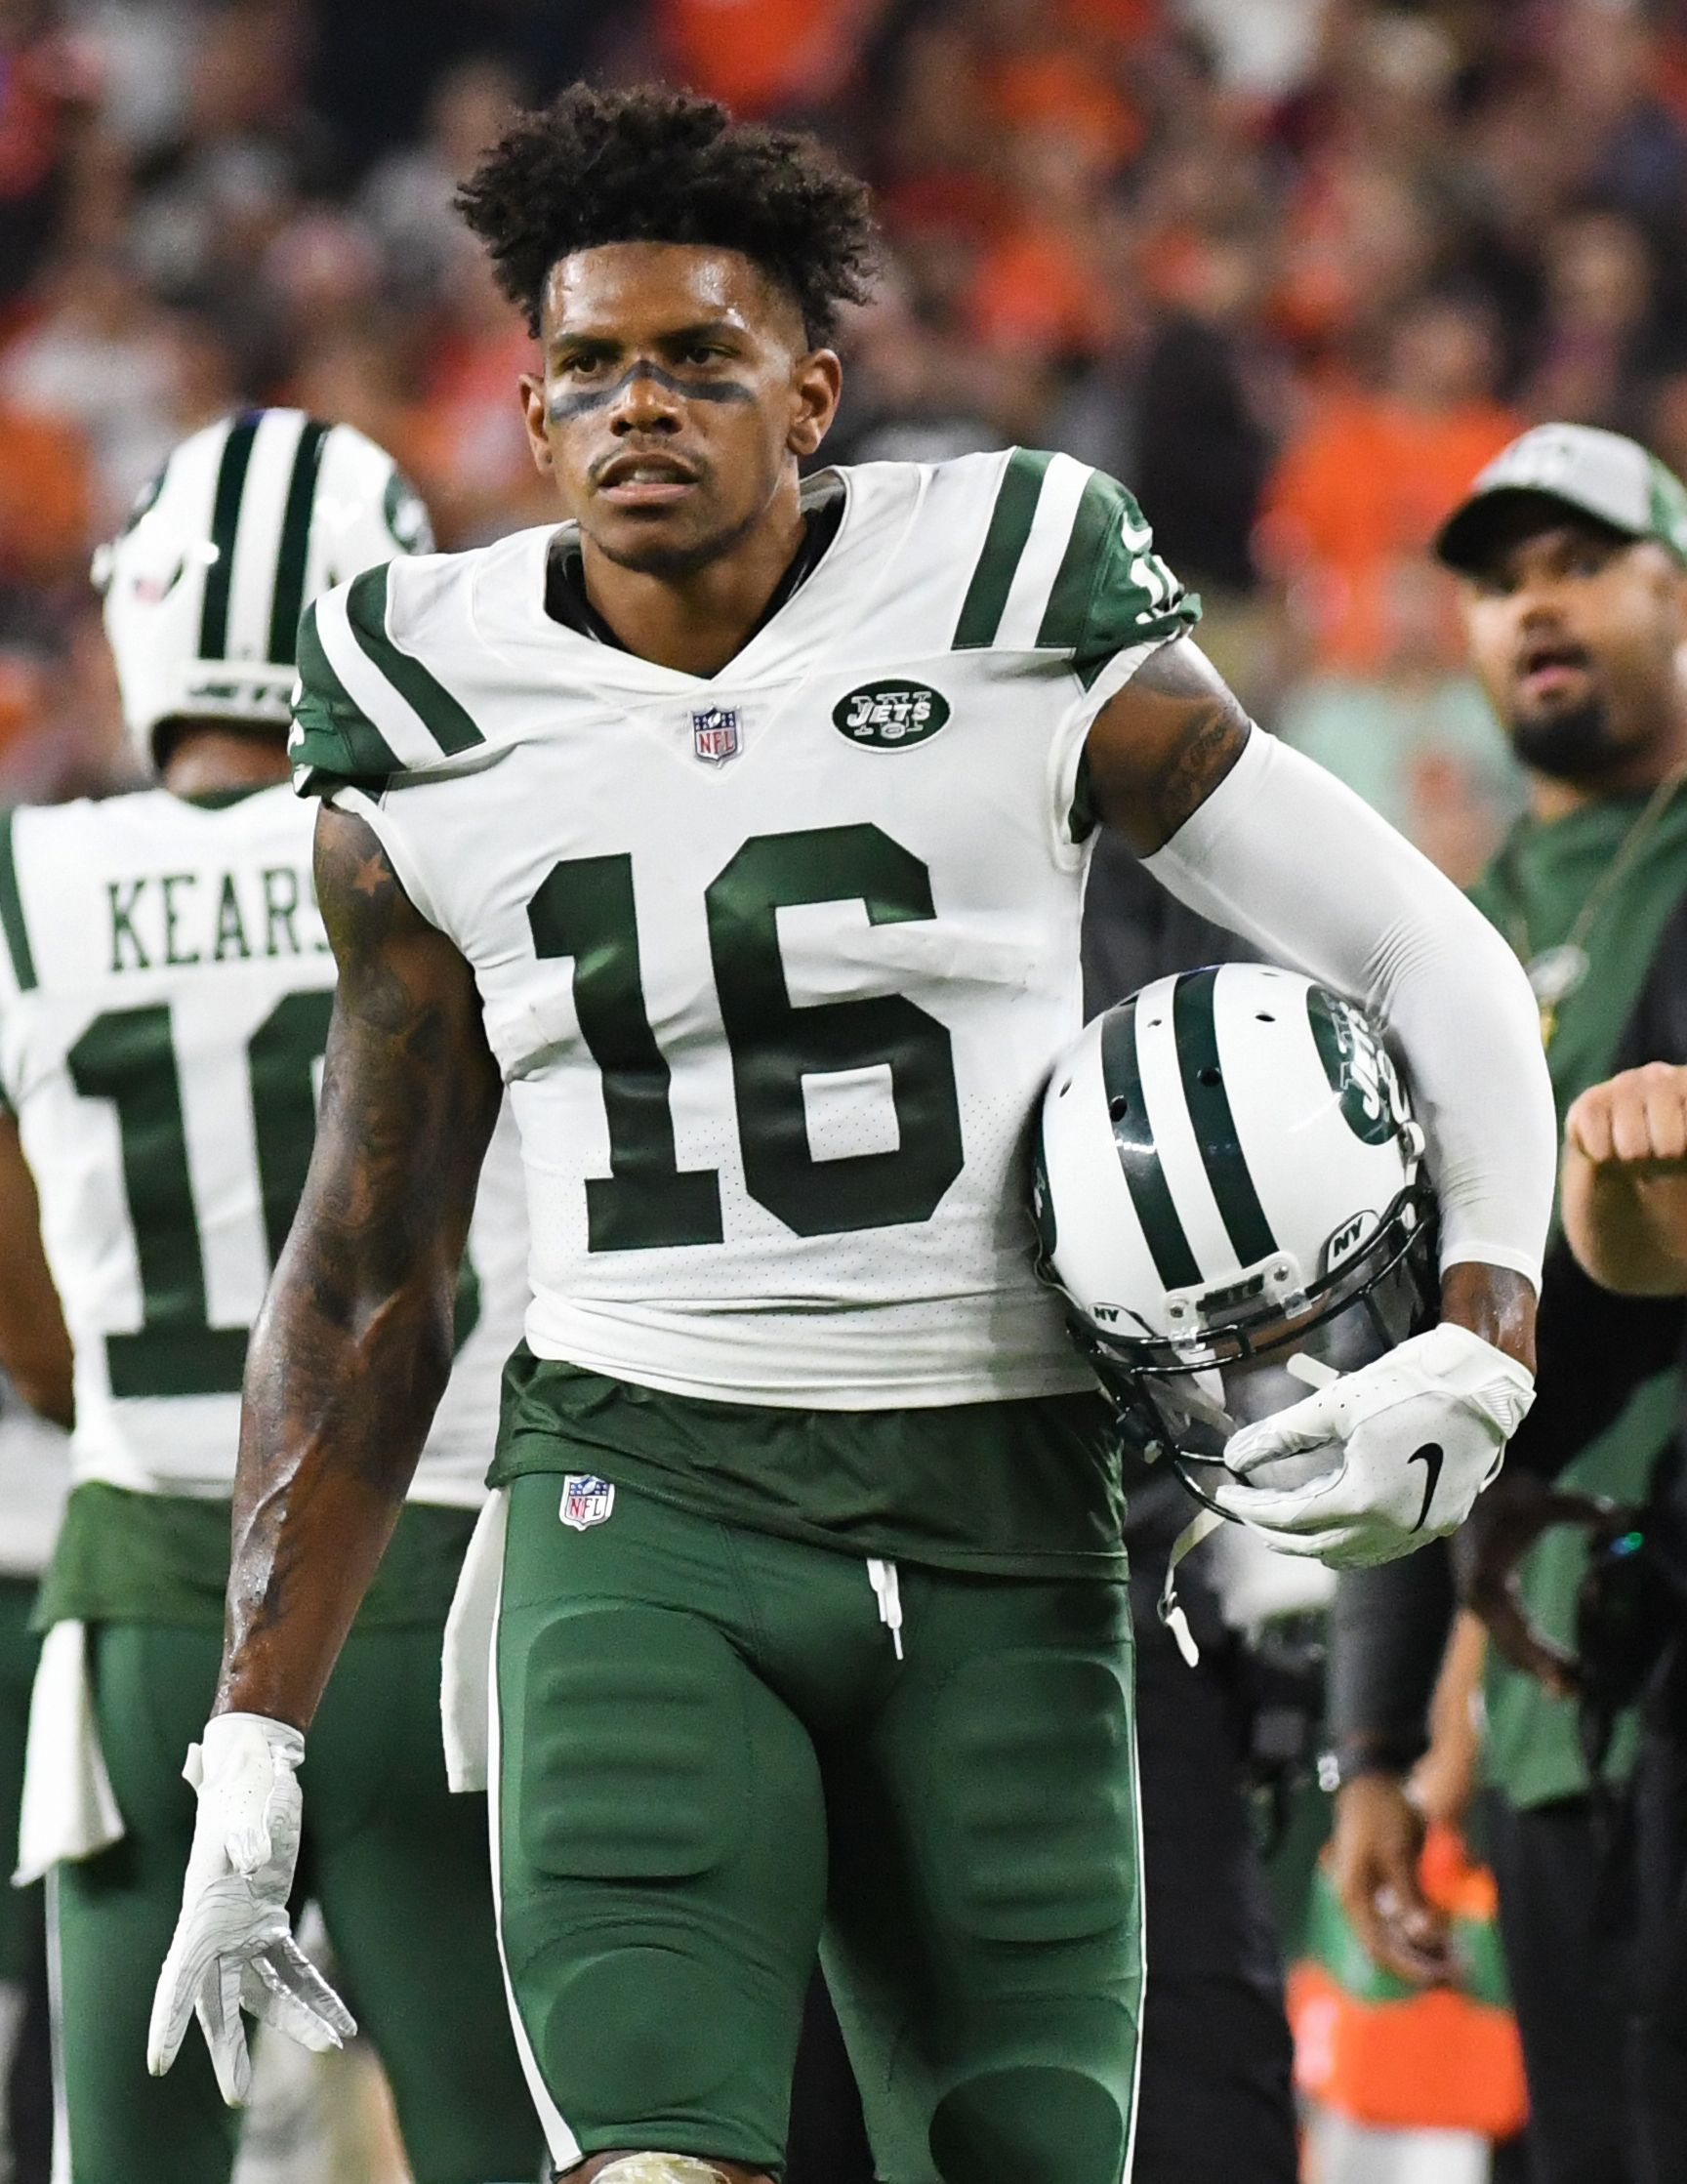 Terrelle Pryor #16 of the New York Jets greets teammates on the sidelines in a game against the Cleveland Browns on September 20, 2018 at FirstEnergy Stadium in Cleveland, Ohio. | Source: Getty Images